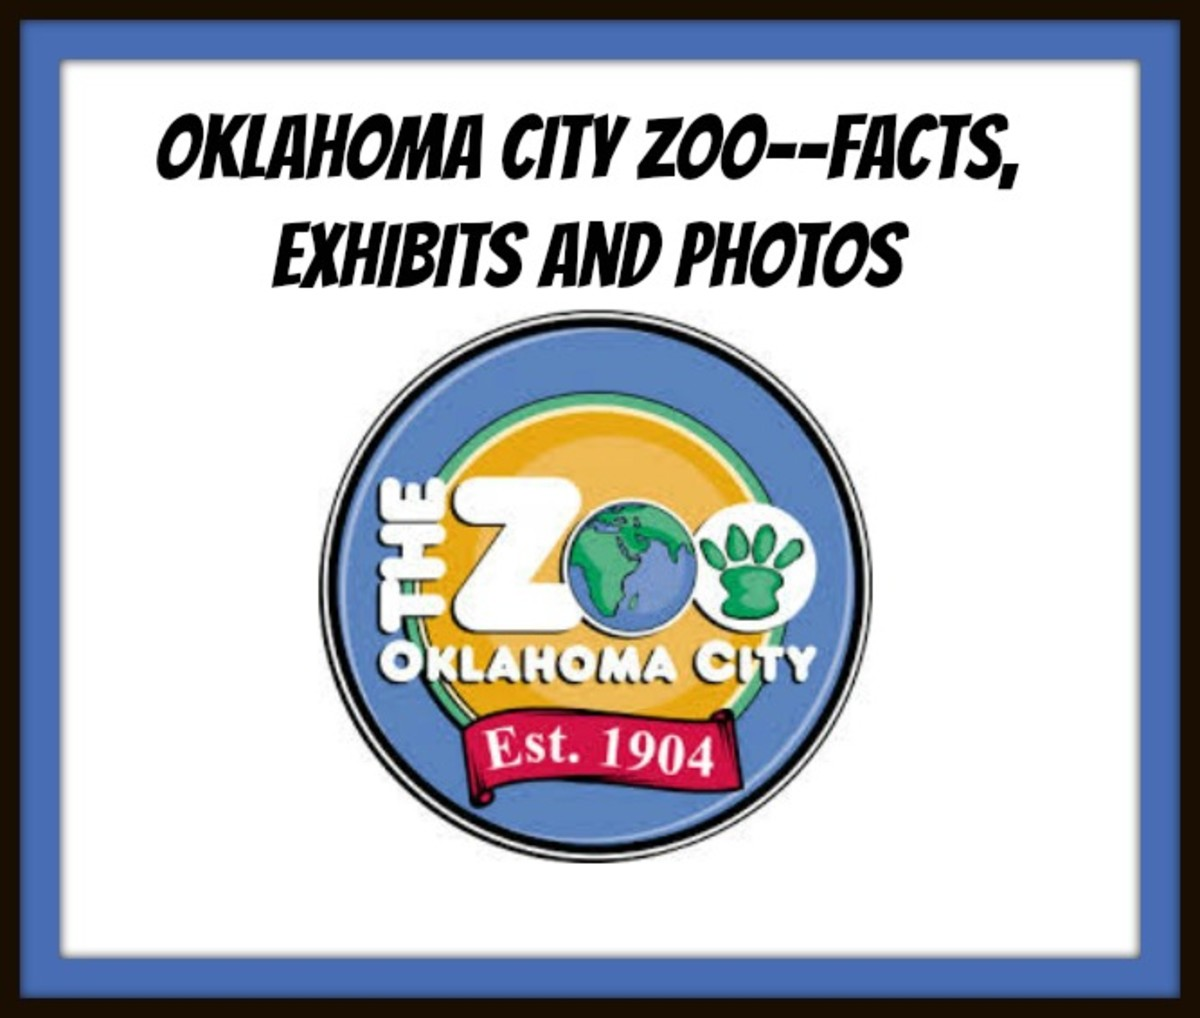 Oklahoma City Zoo--Facts, Exhibits and Photos